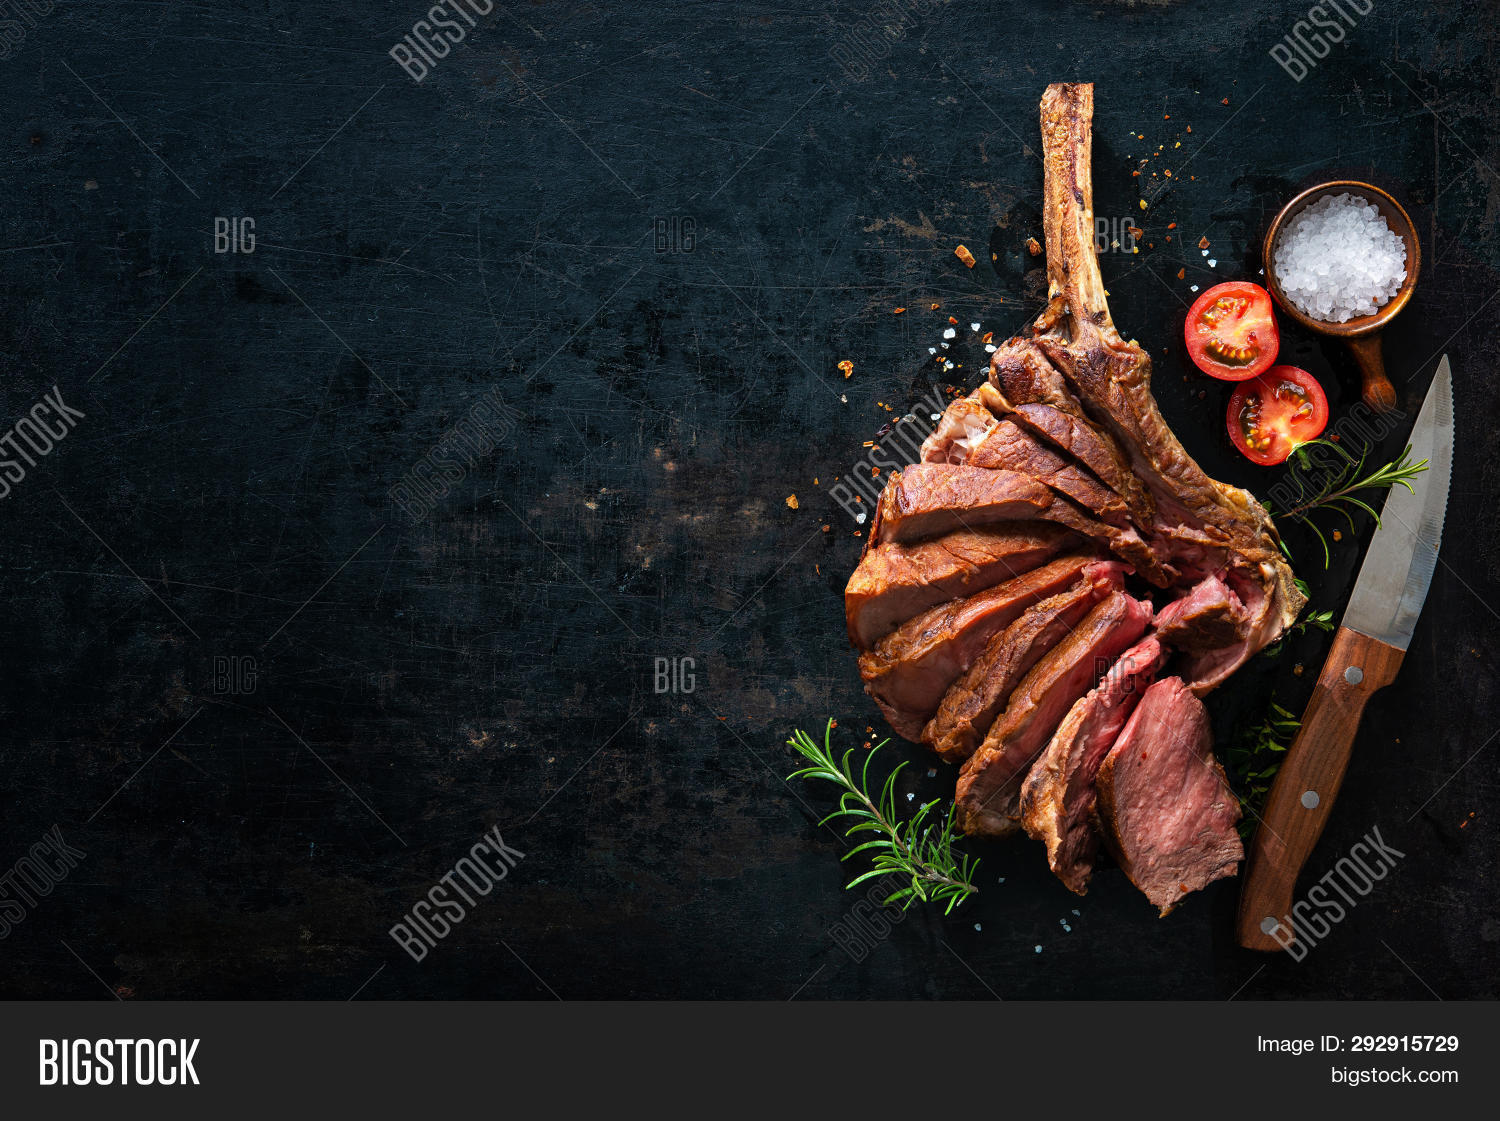 above,aged,background,barbecue,bbq,beef,beef steak,beefsteak,black,board,boeuf,bone,close-up,cooked,cooking,copy space,cote,cut,dark,dinner,dry,eating,entrecote,food,gourmet,grill,grilled,knife,meal,meat,pepper,piece,porterhouse,rare,red,rib,rib eye,roast,roasted,rosemary,seasoning,slice,sliced,spices,steak,tomahawk,top view,wagyu